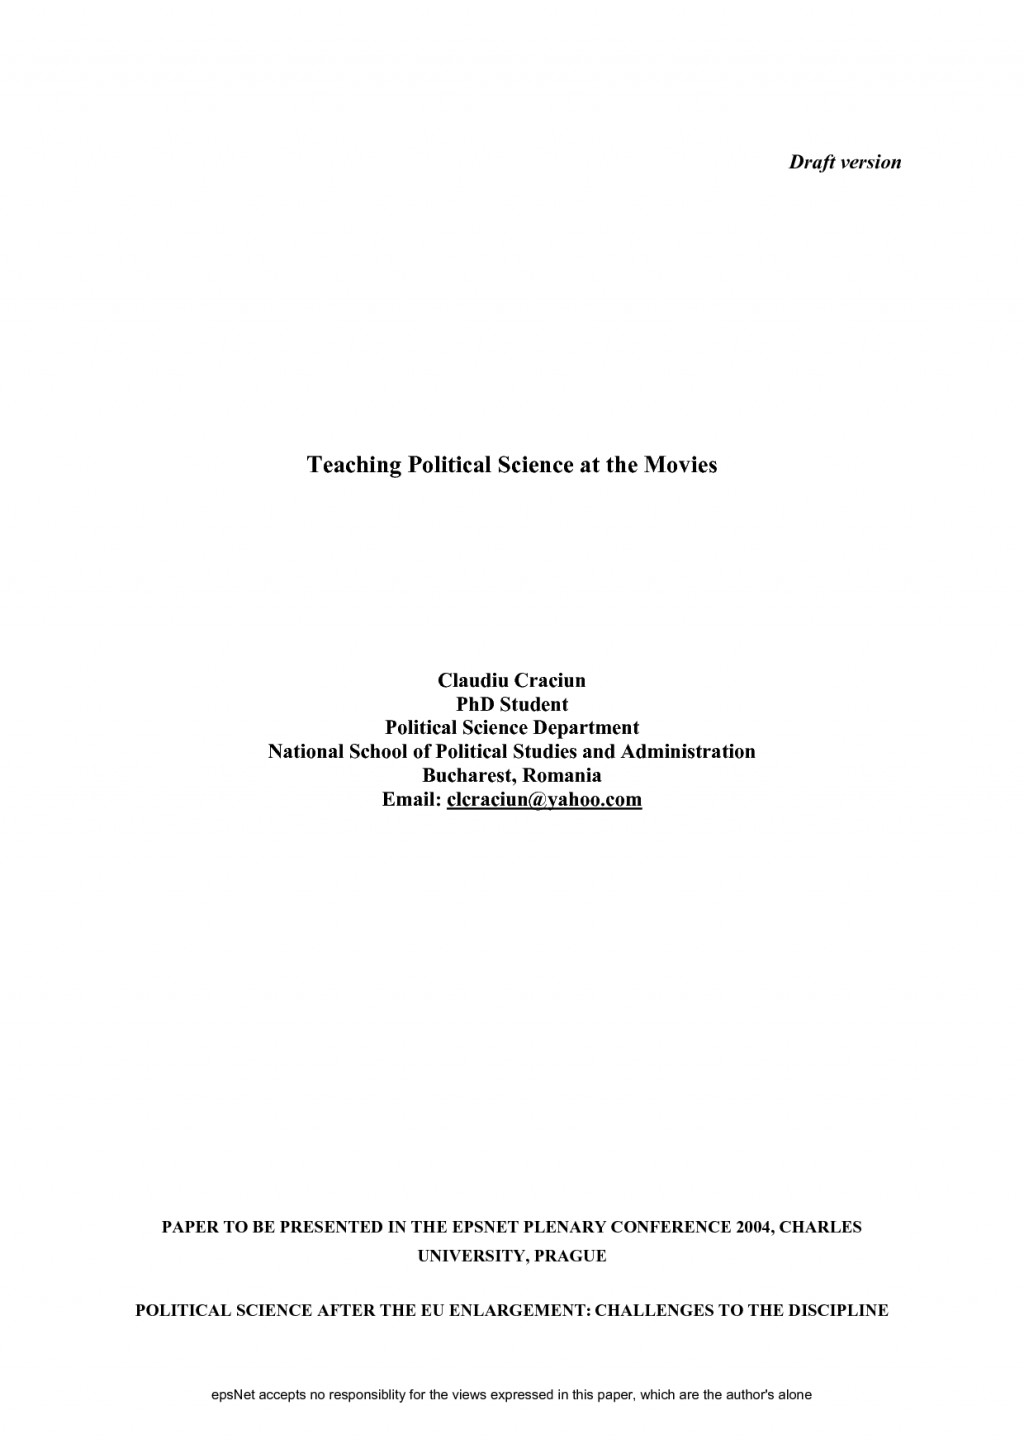 019 Research Paper Apsa Example Cover Page 319500 Template For Rare Apa Format Sample Title Large